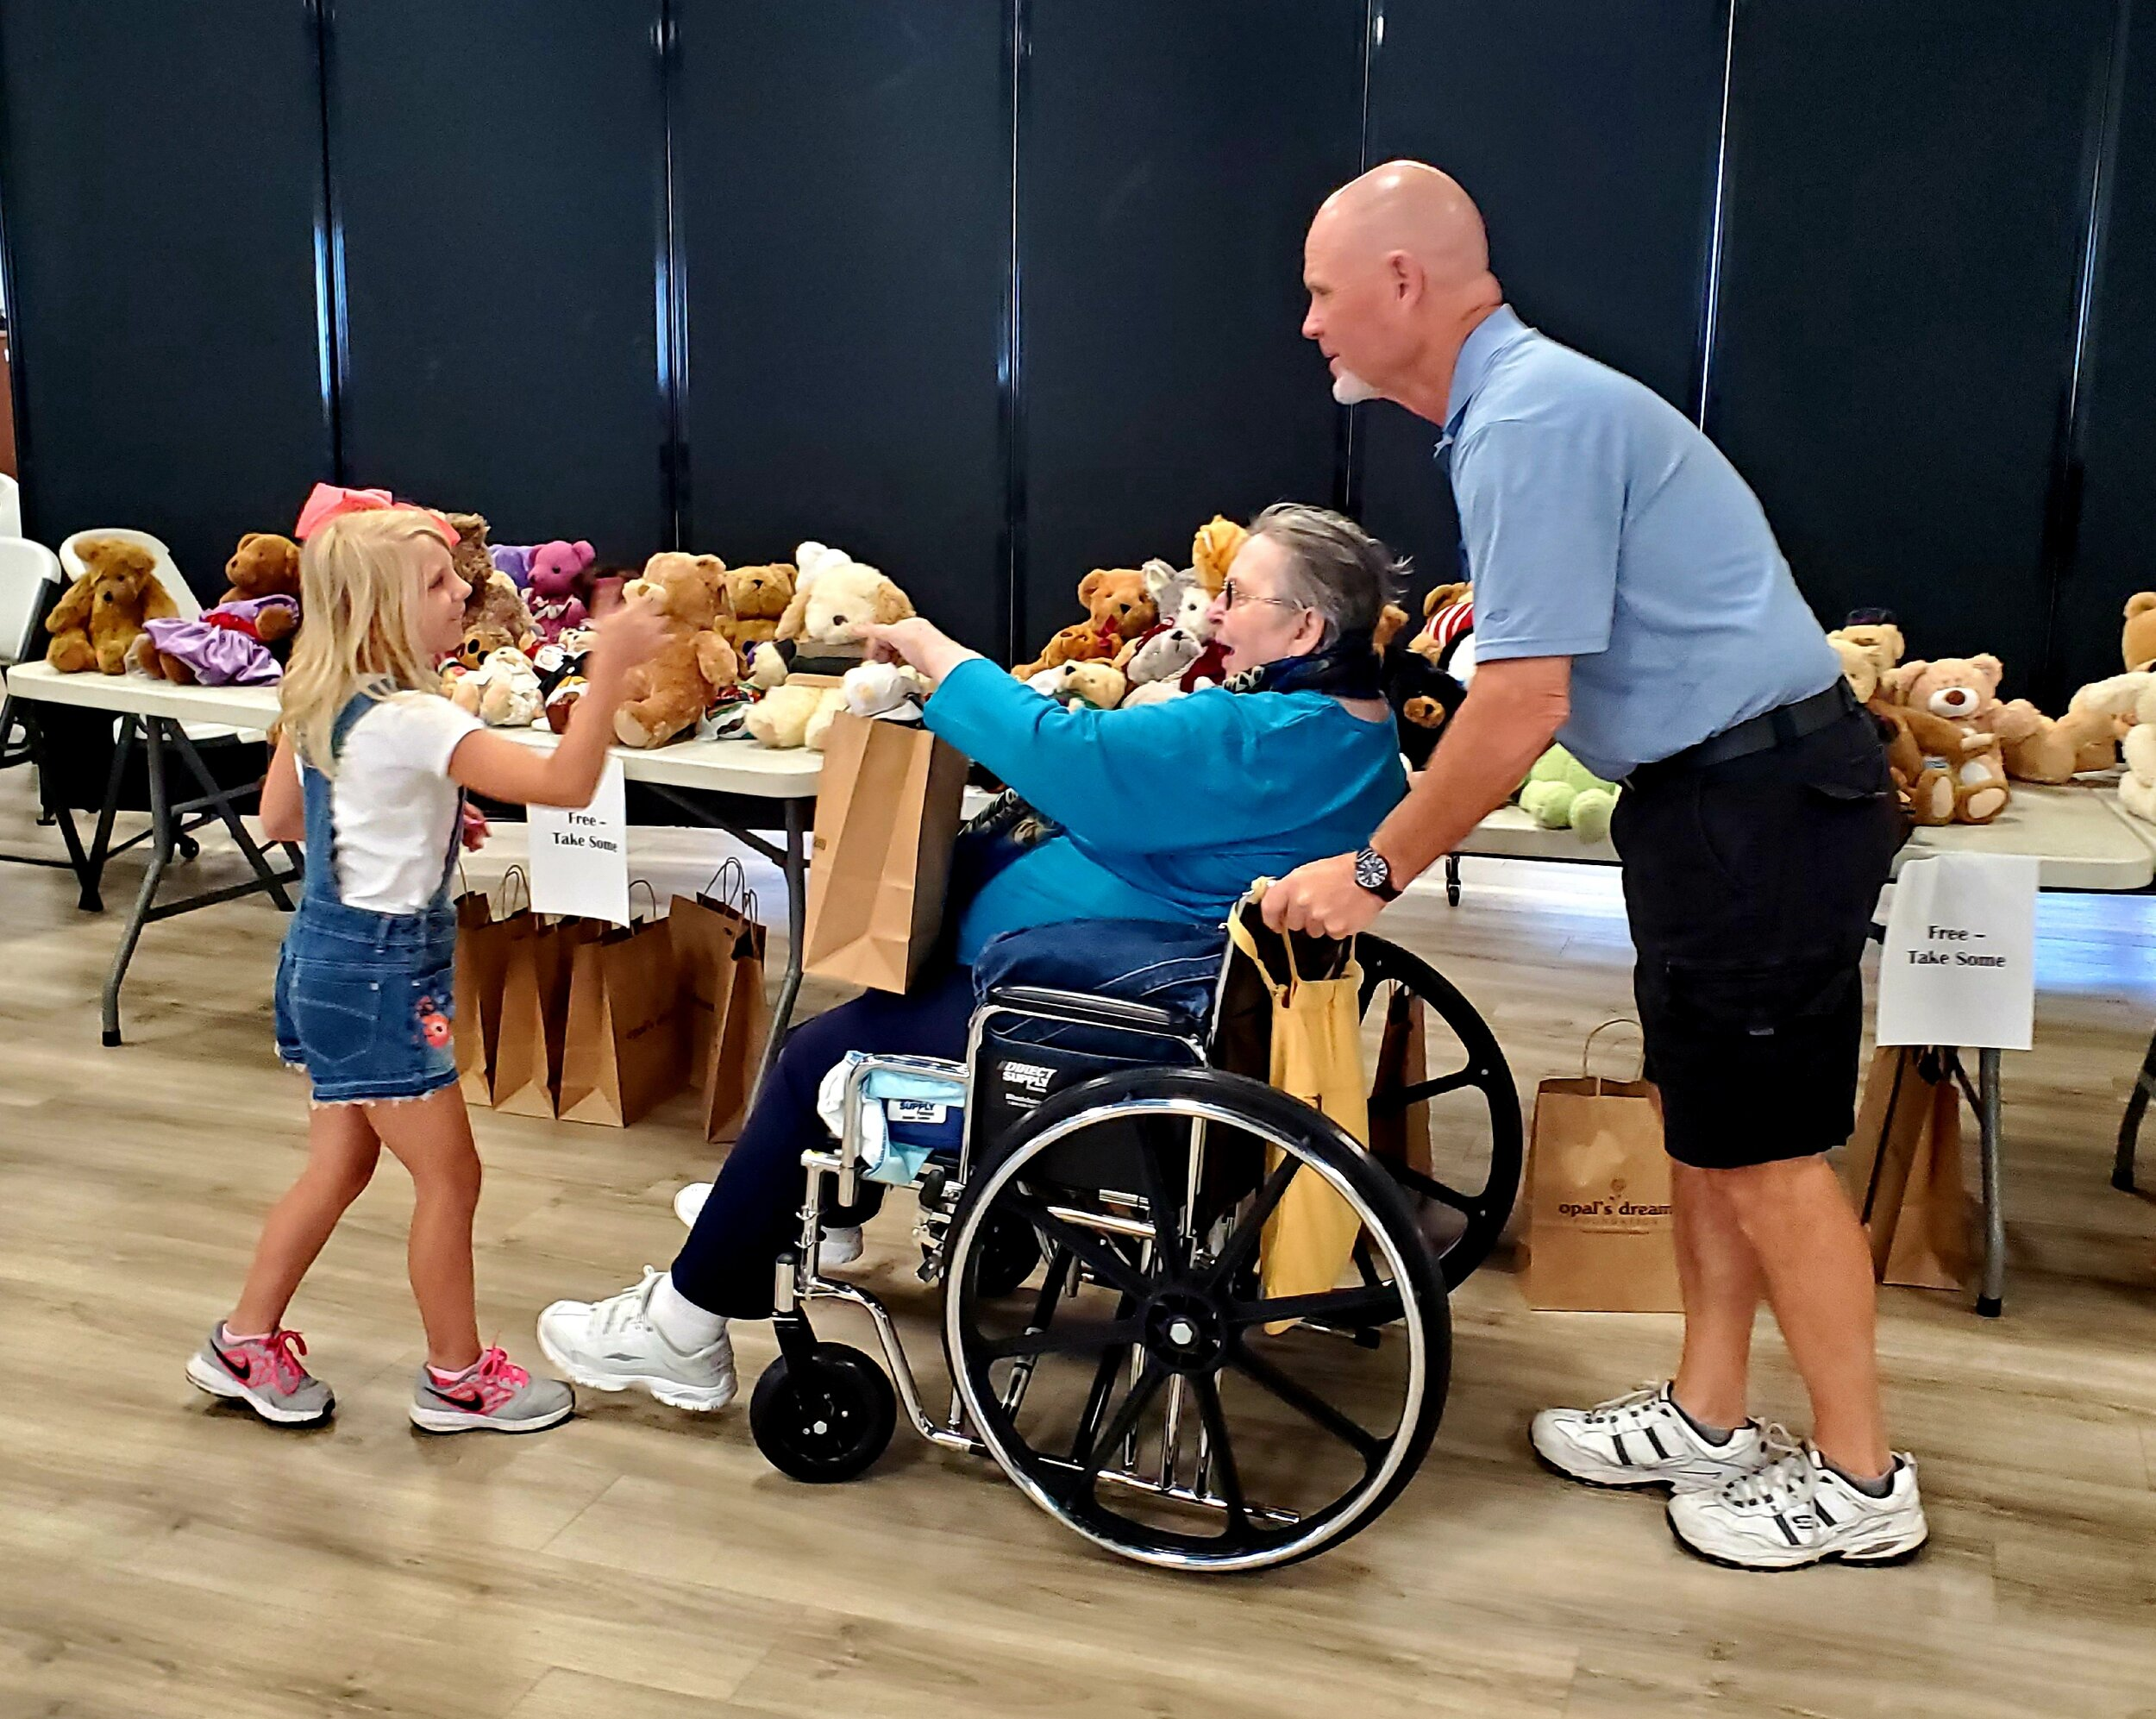 Board Member Jeff Healey enjoys working directly with seniors, and has quickly become an asset in the communities we serve.